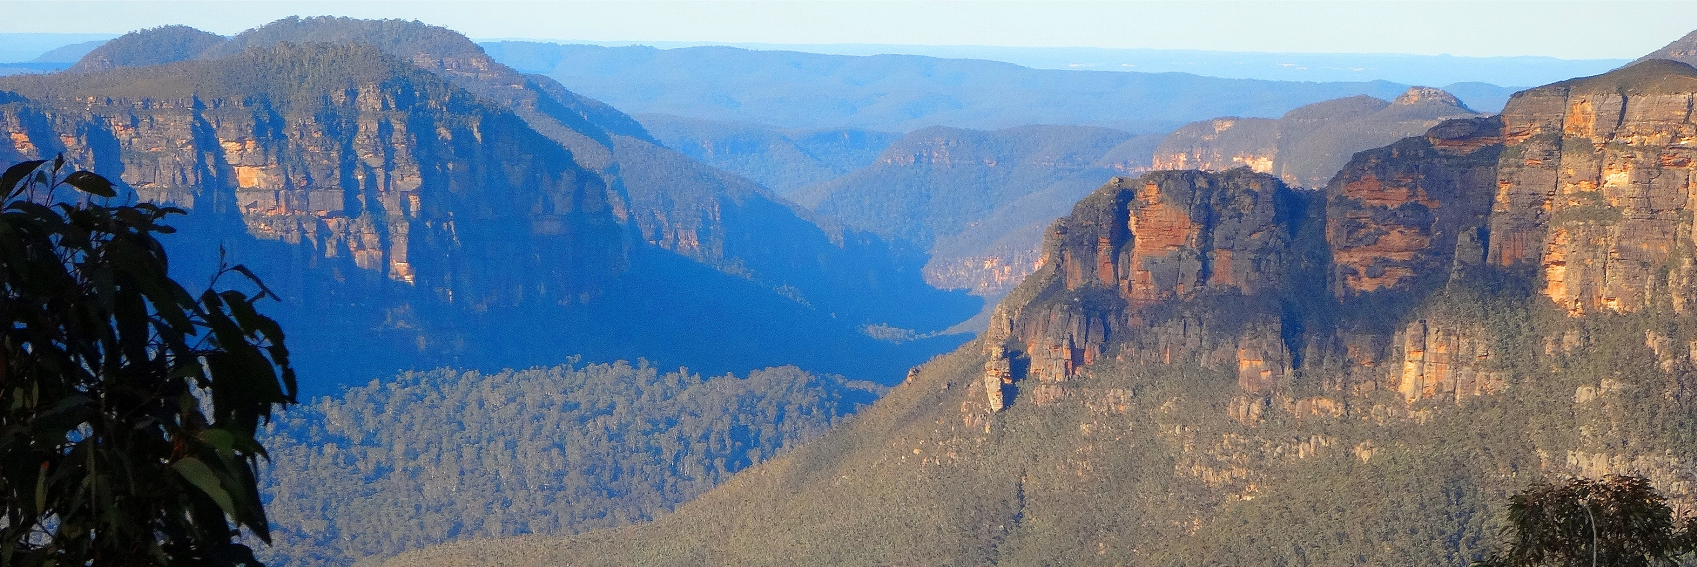 blue mountains katoomba